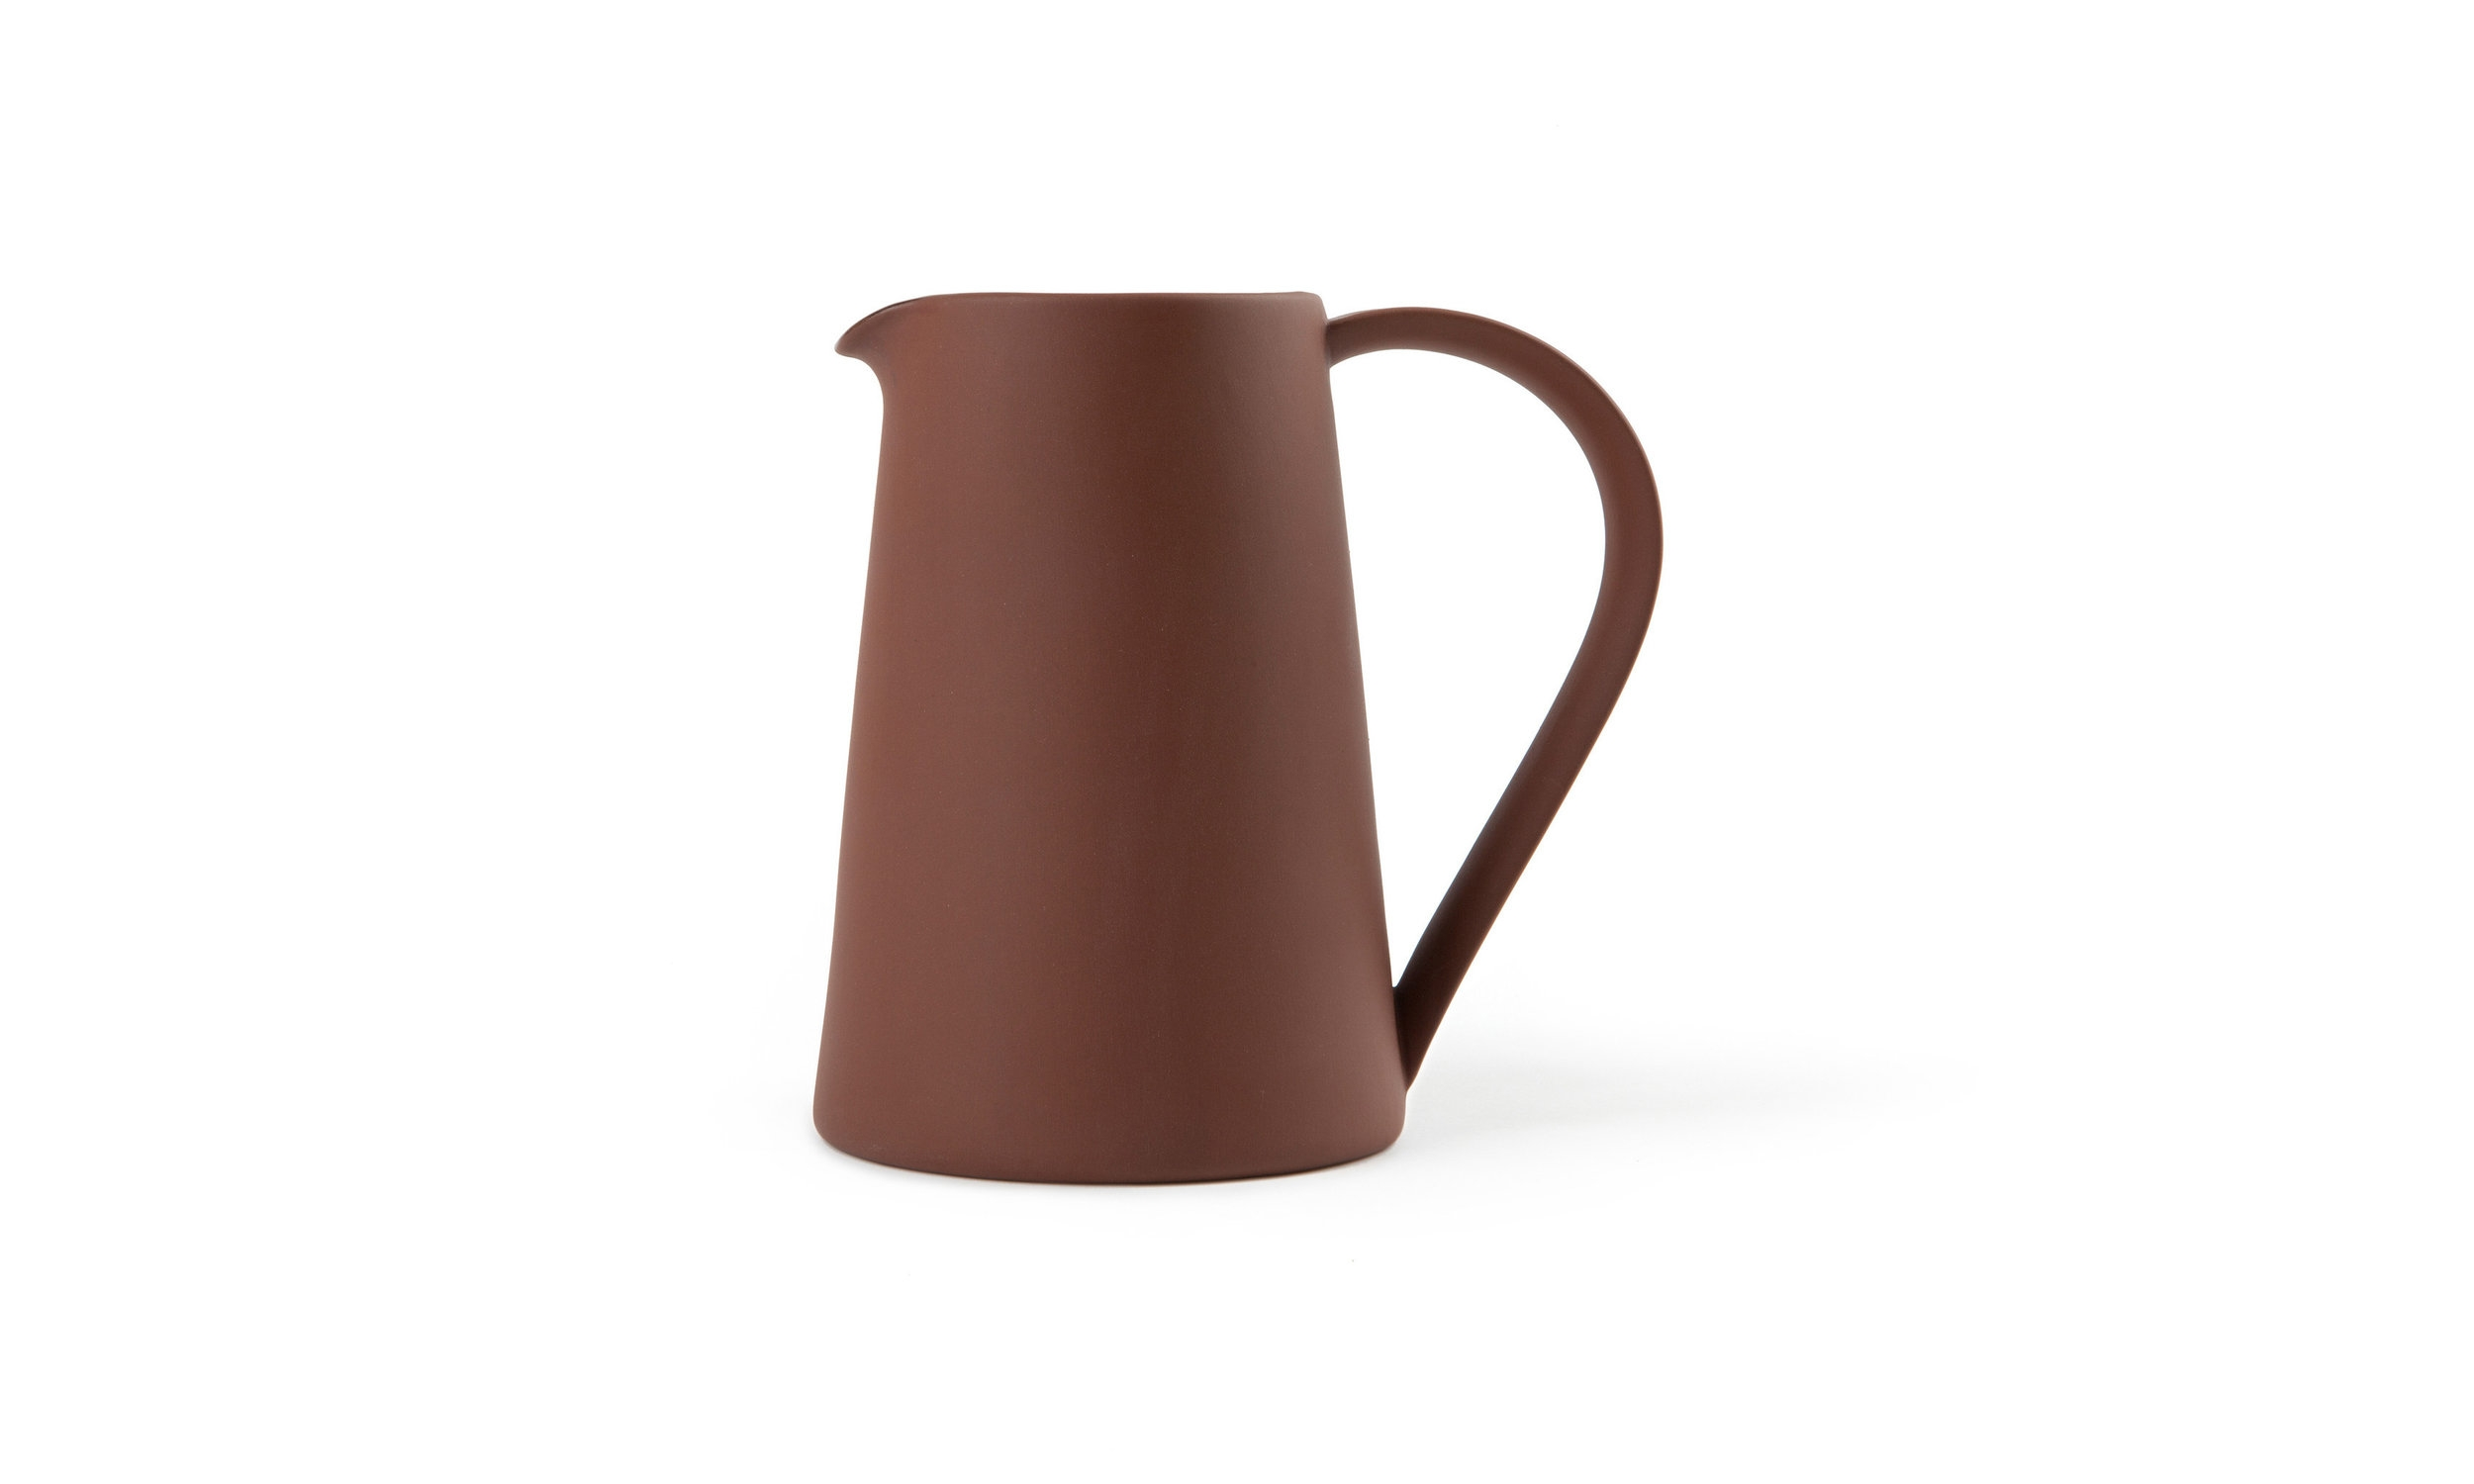 bureau-des-recommandations-pitcher-another-country-ian-mcintyre-pottery-terracotta.jpg